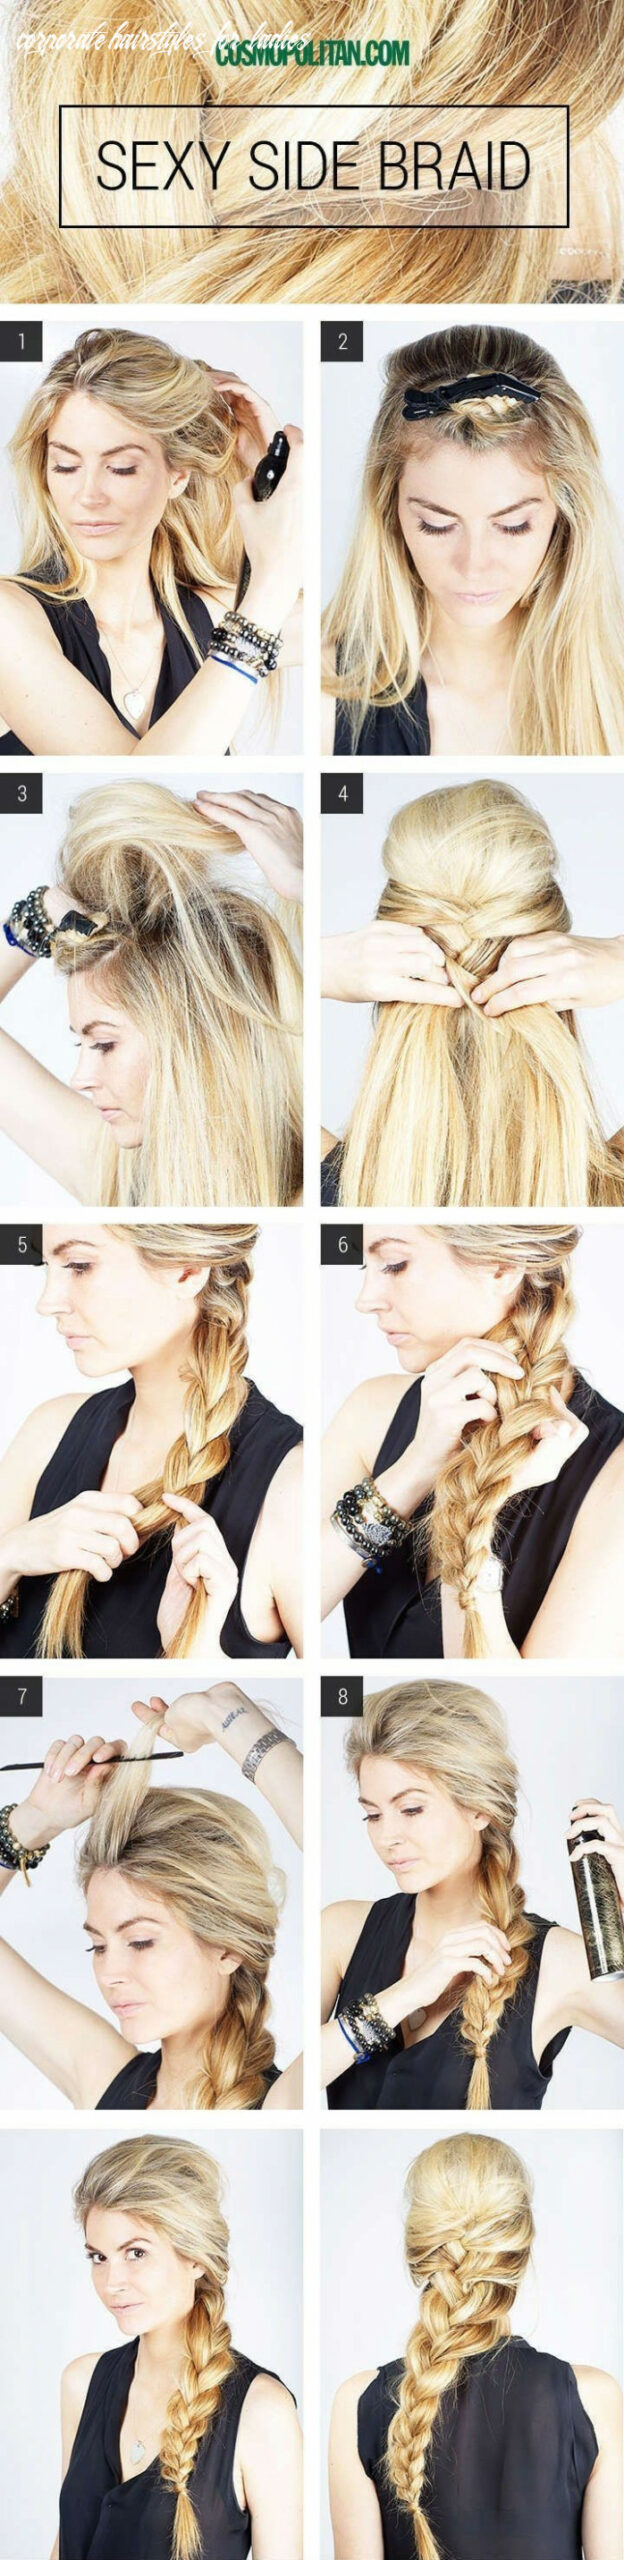 11 Simple Office Hairstyles for Women: You Have To See - PoPular ...